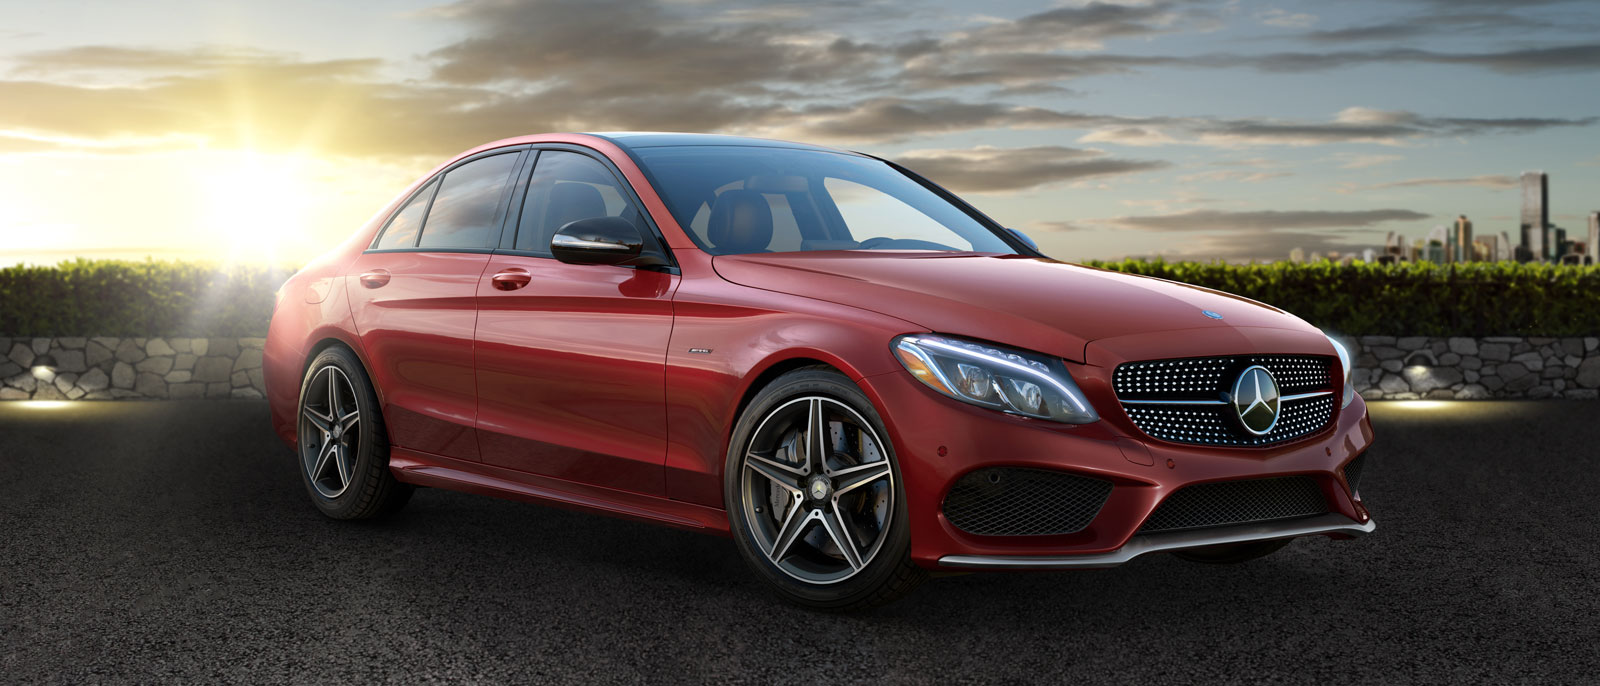 2017 c450 amg sedan best new cars for 2018 for Mercedes benz employee discount